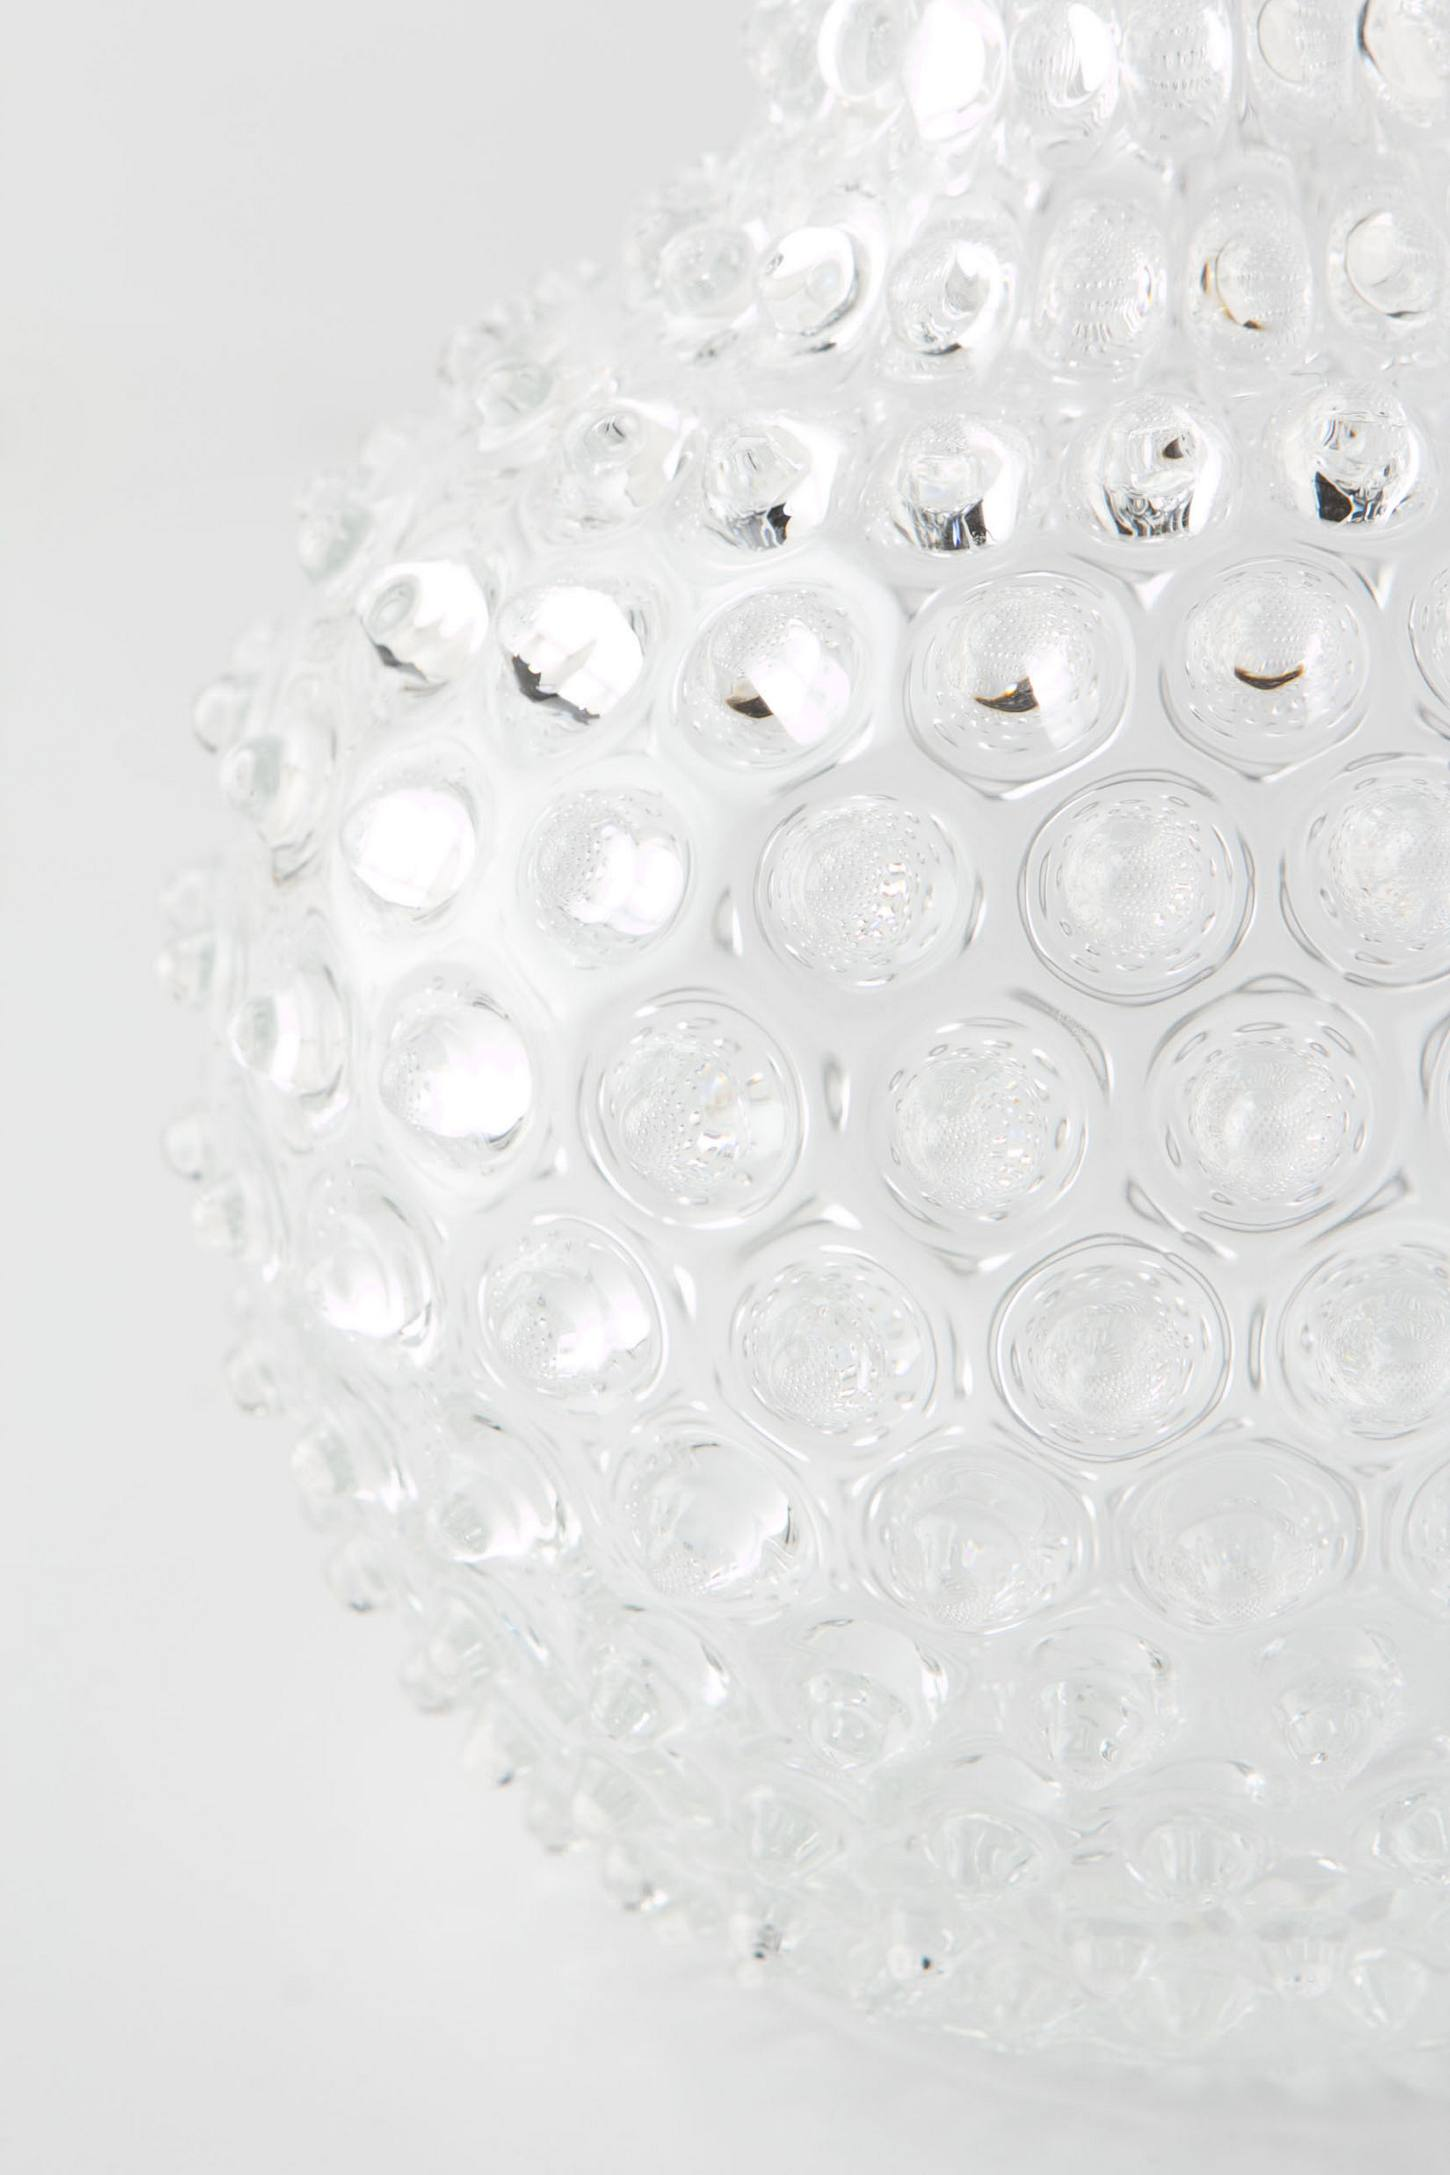 Slide View: 3: Hobnail Pitcher